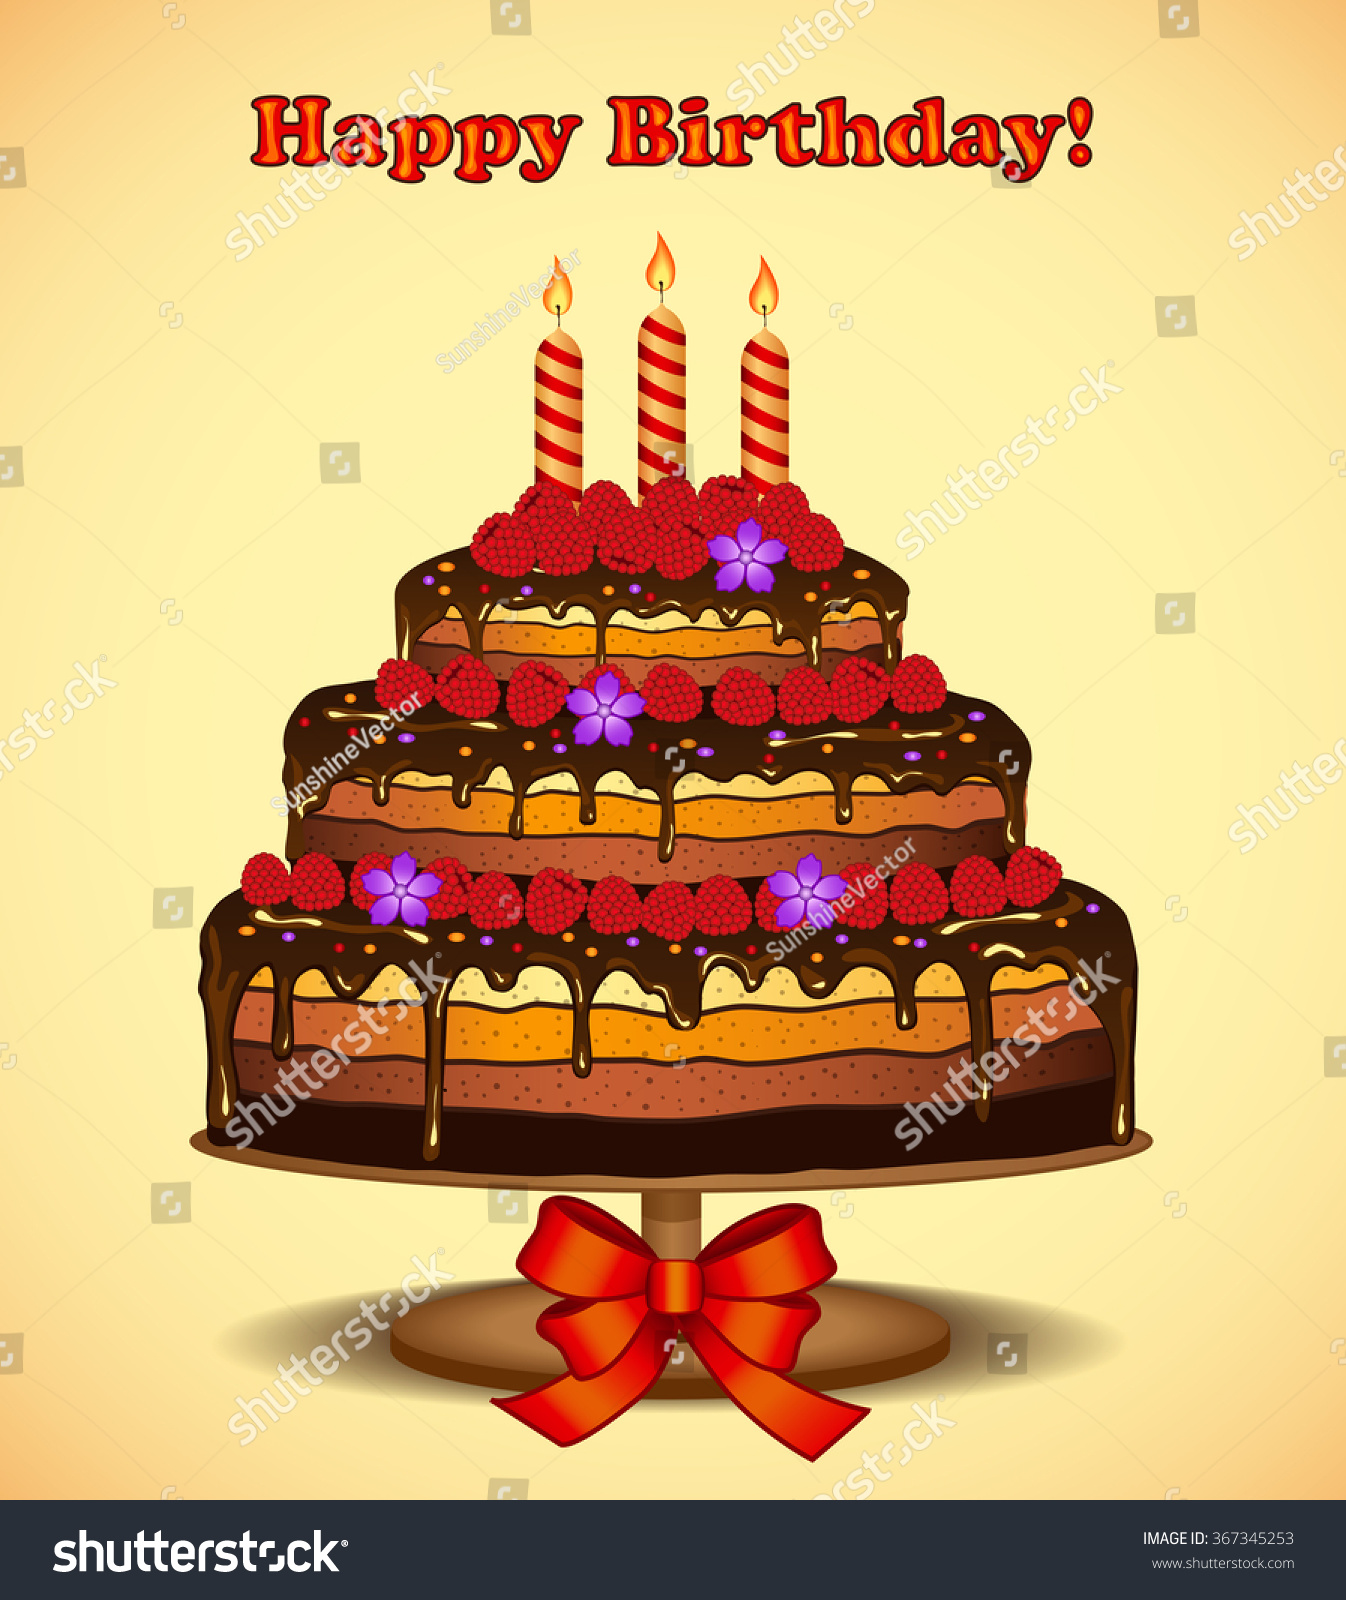 Birthday Cake And Wishing Card Birthday Inspiring Birthday Cakes – Happy Birthday Cake Greetings